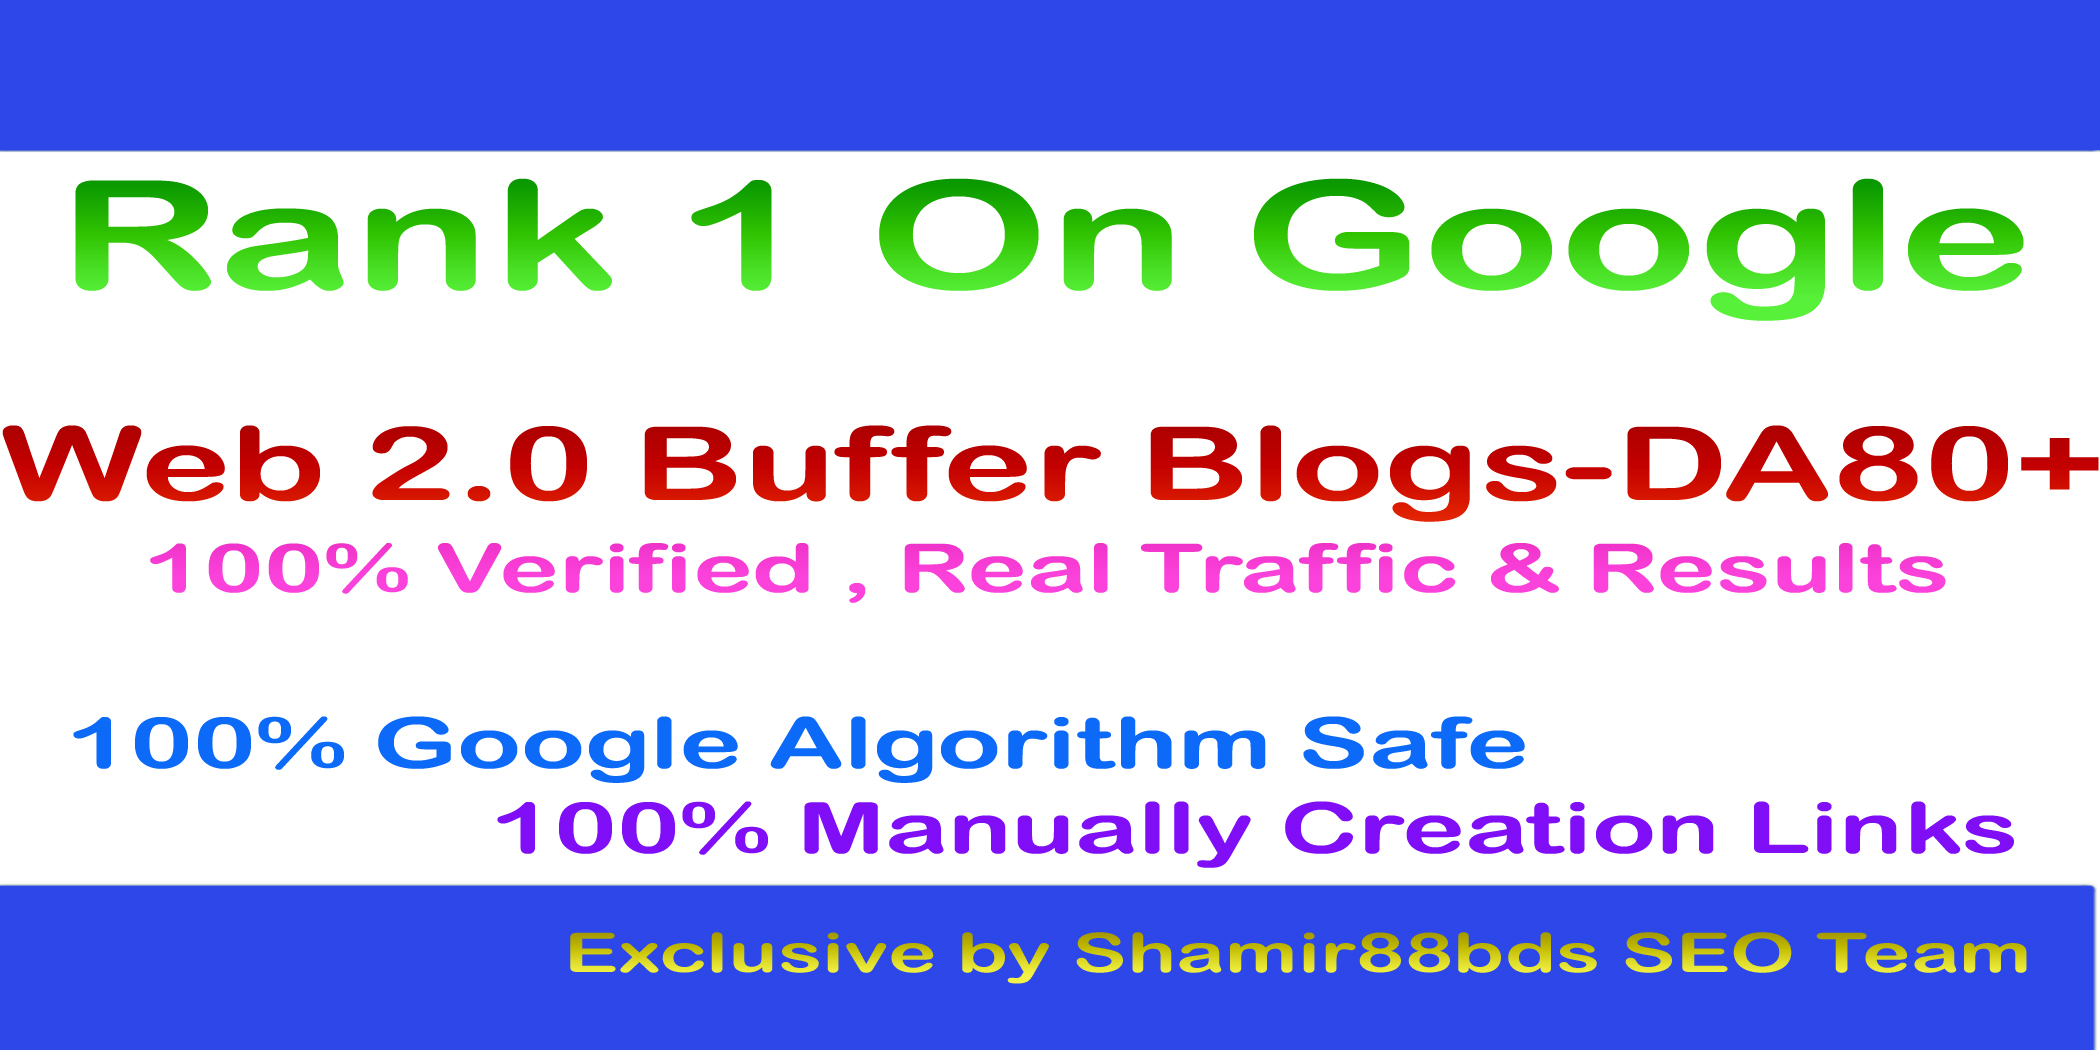 Manually 20 Web 2.0 Buffer Blogs DA80+ with Login, Unique Content, and Image